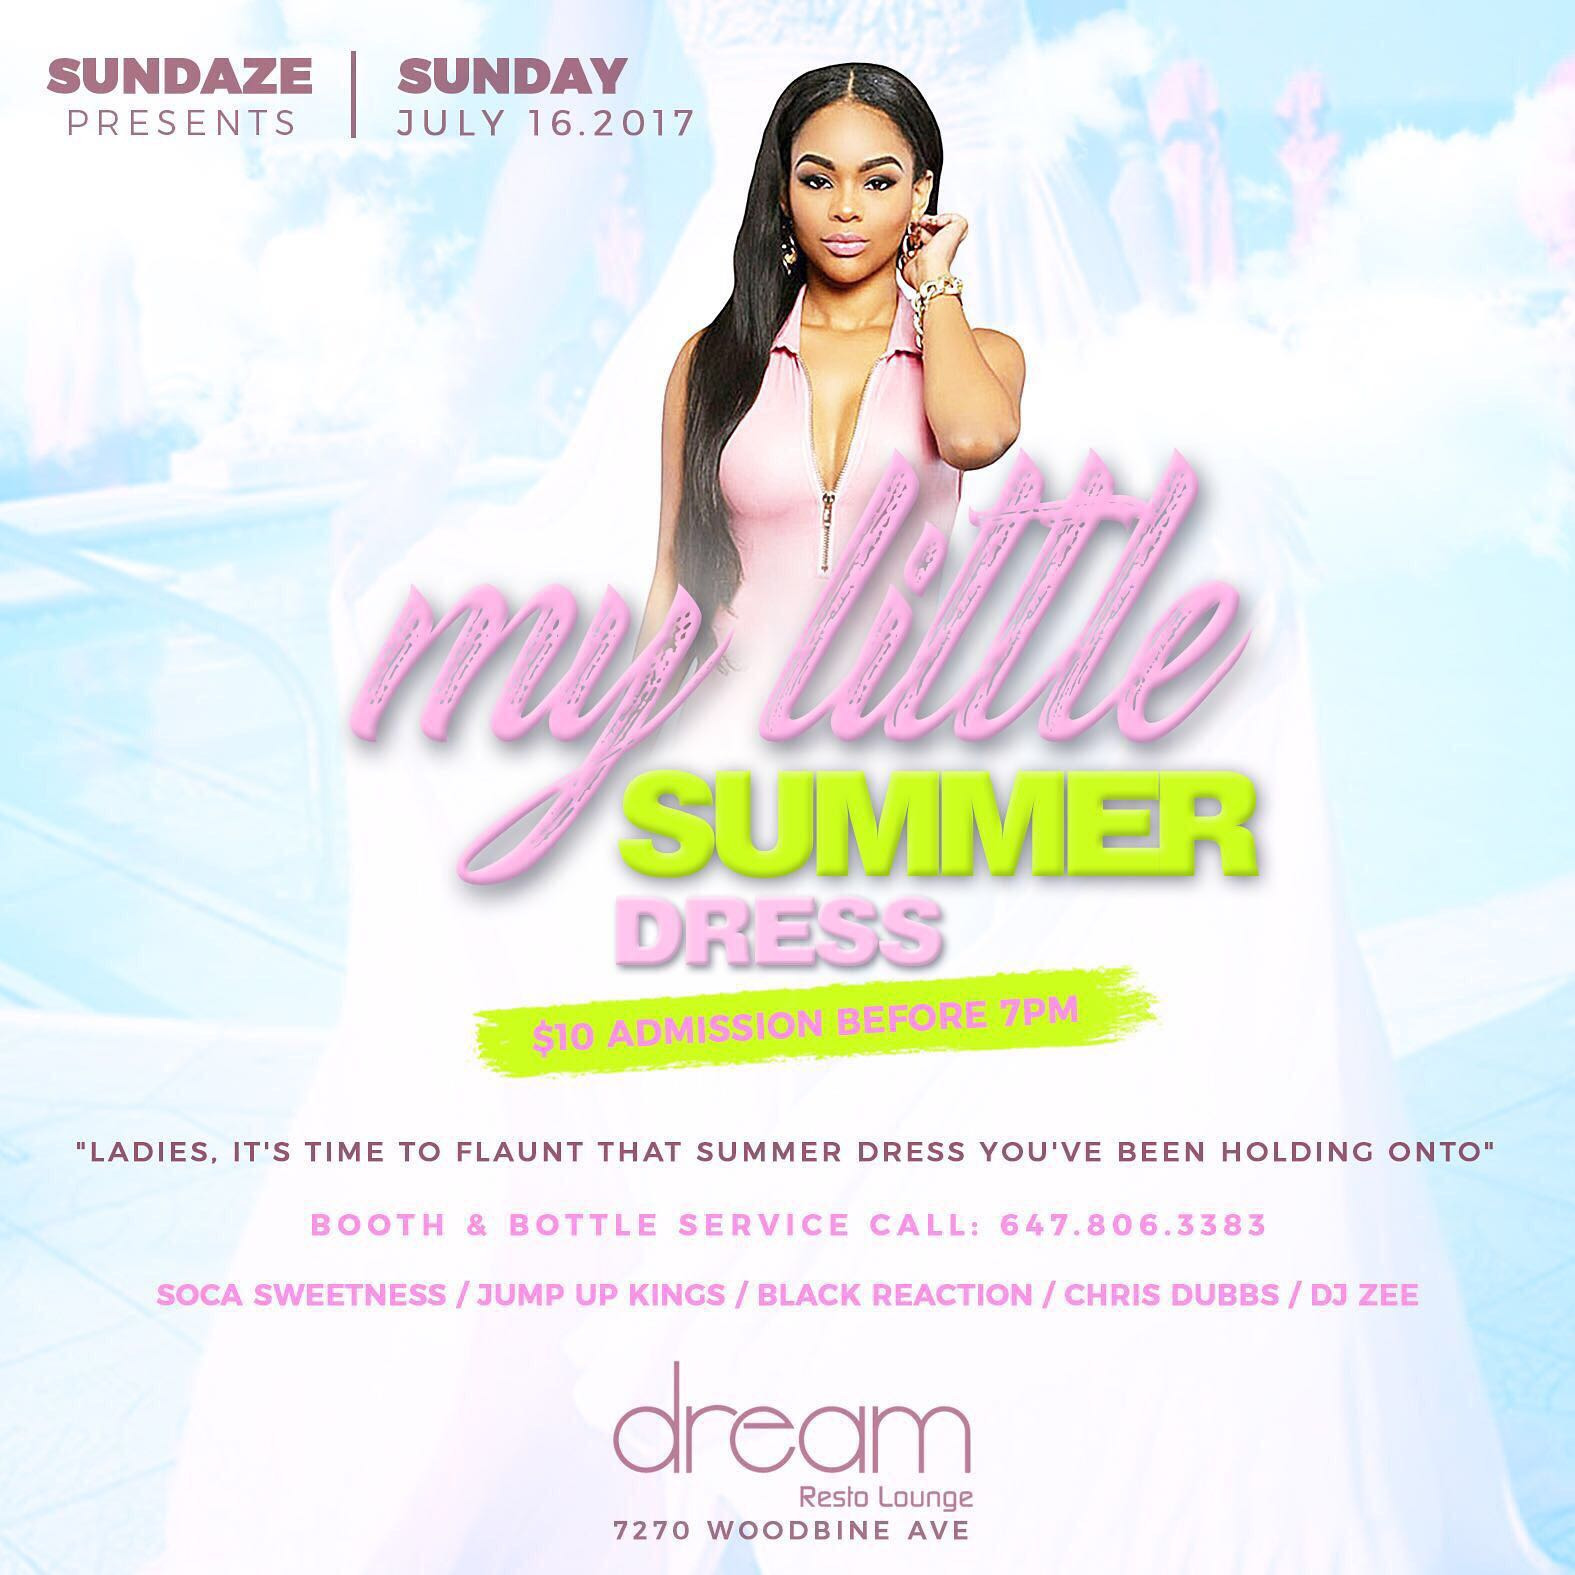 Sundaze Present - My Little SUMMER DRESS